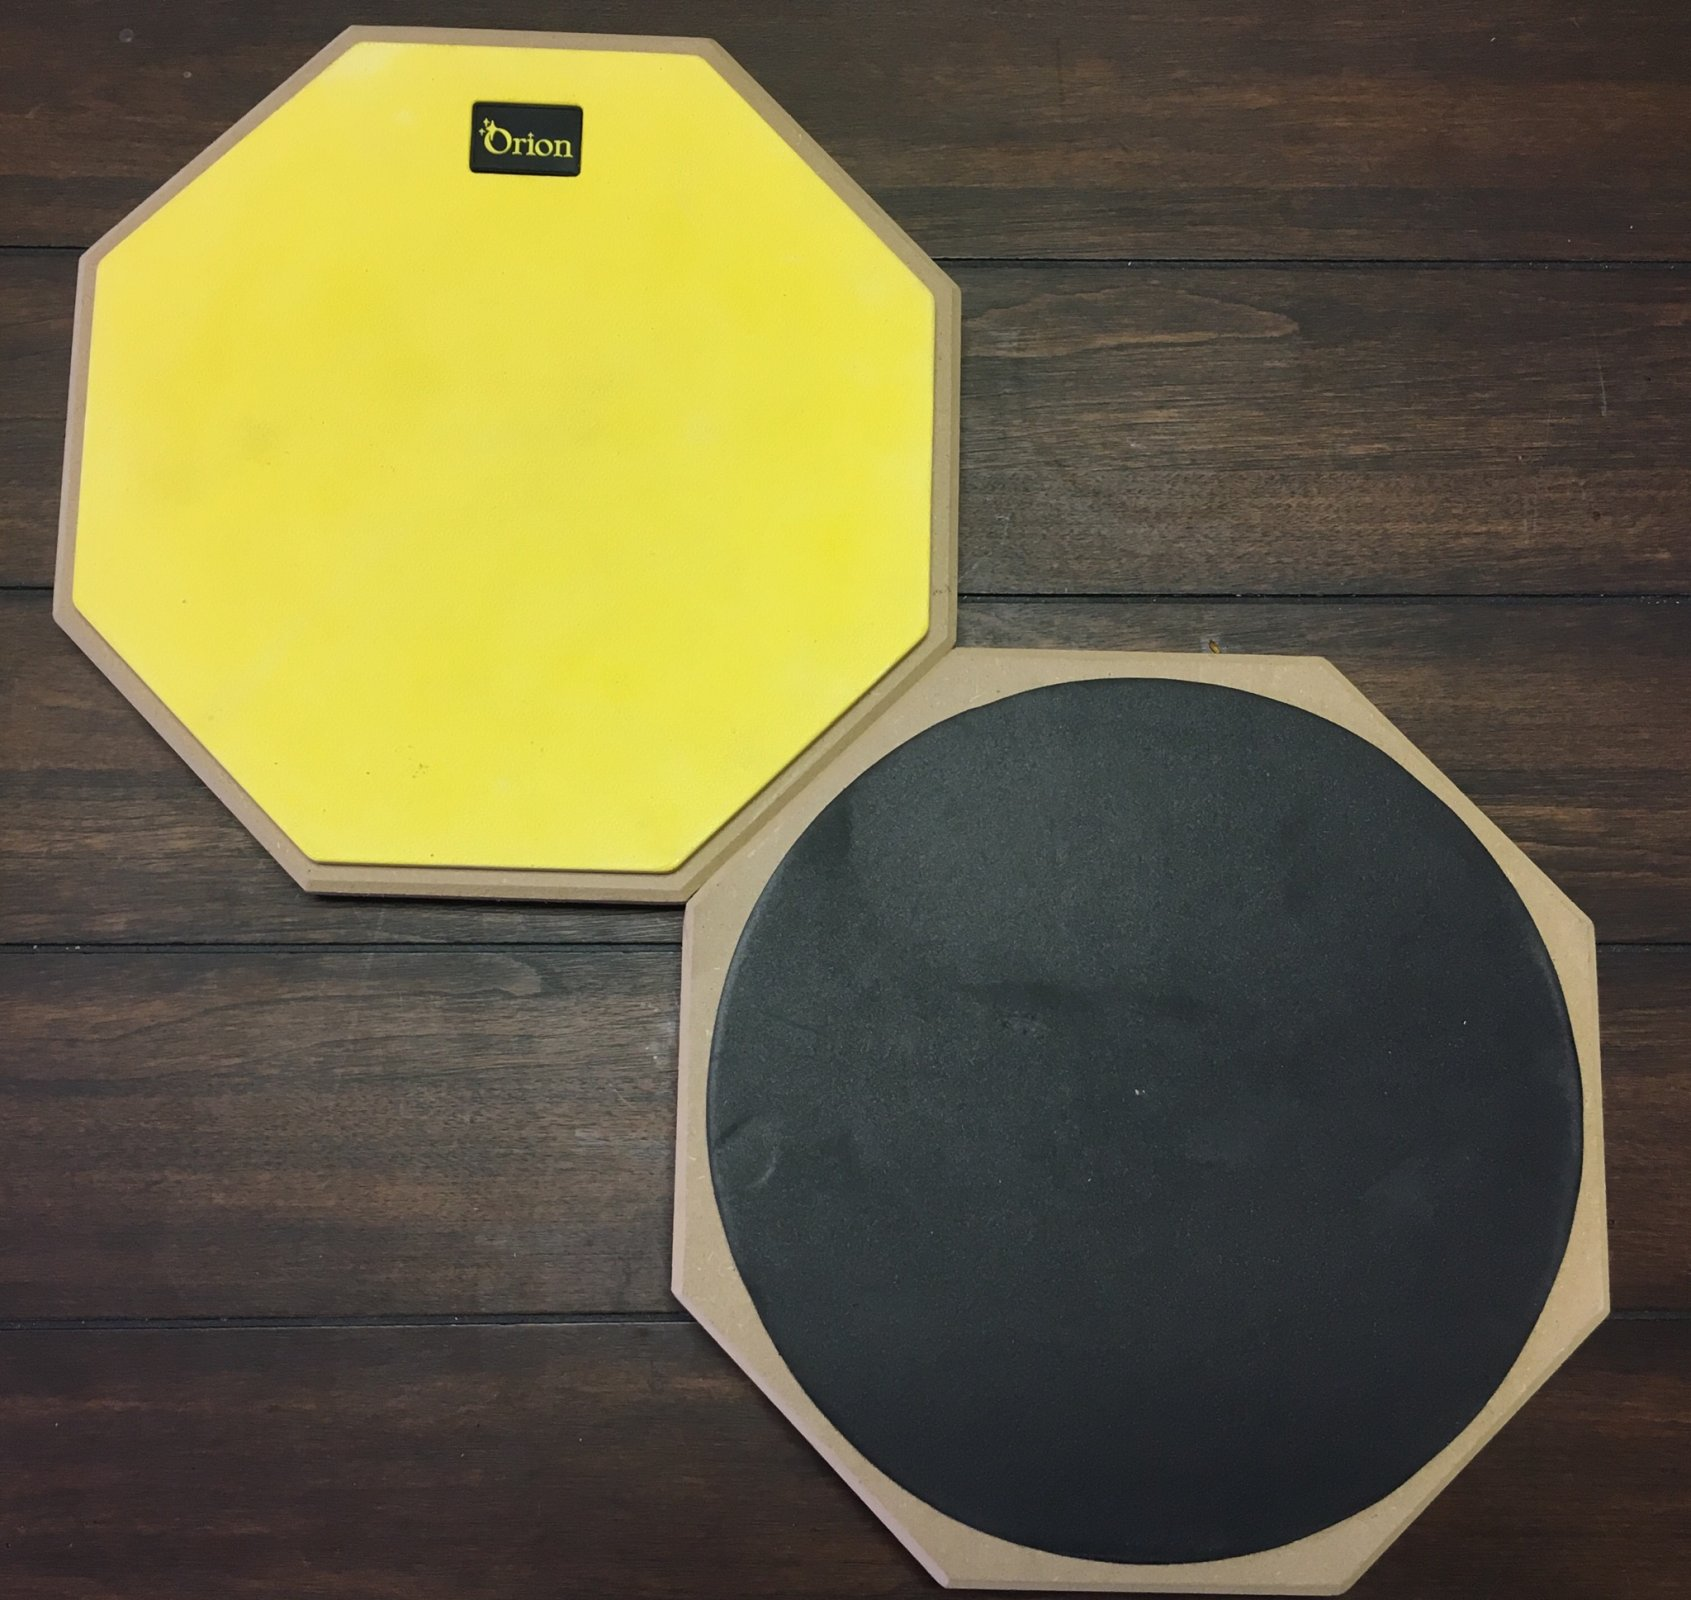 Orion 12 2-Sided Drum Pad - Yellow